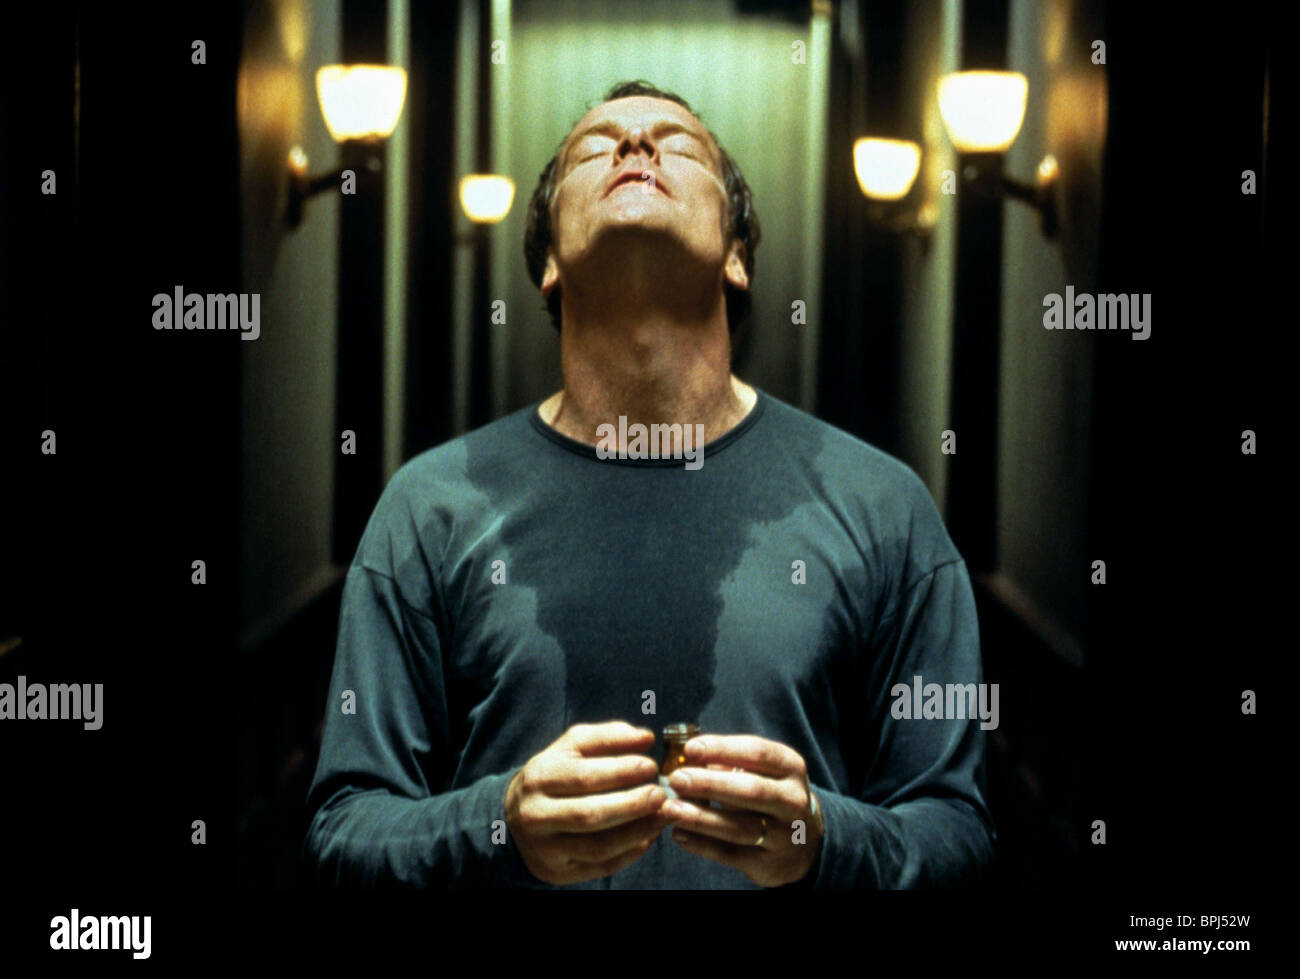 IAIN GLEN DARKNESS (2002) - Stock Image